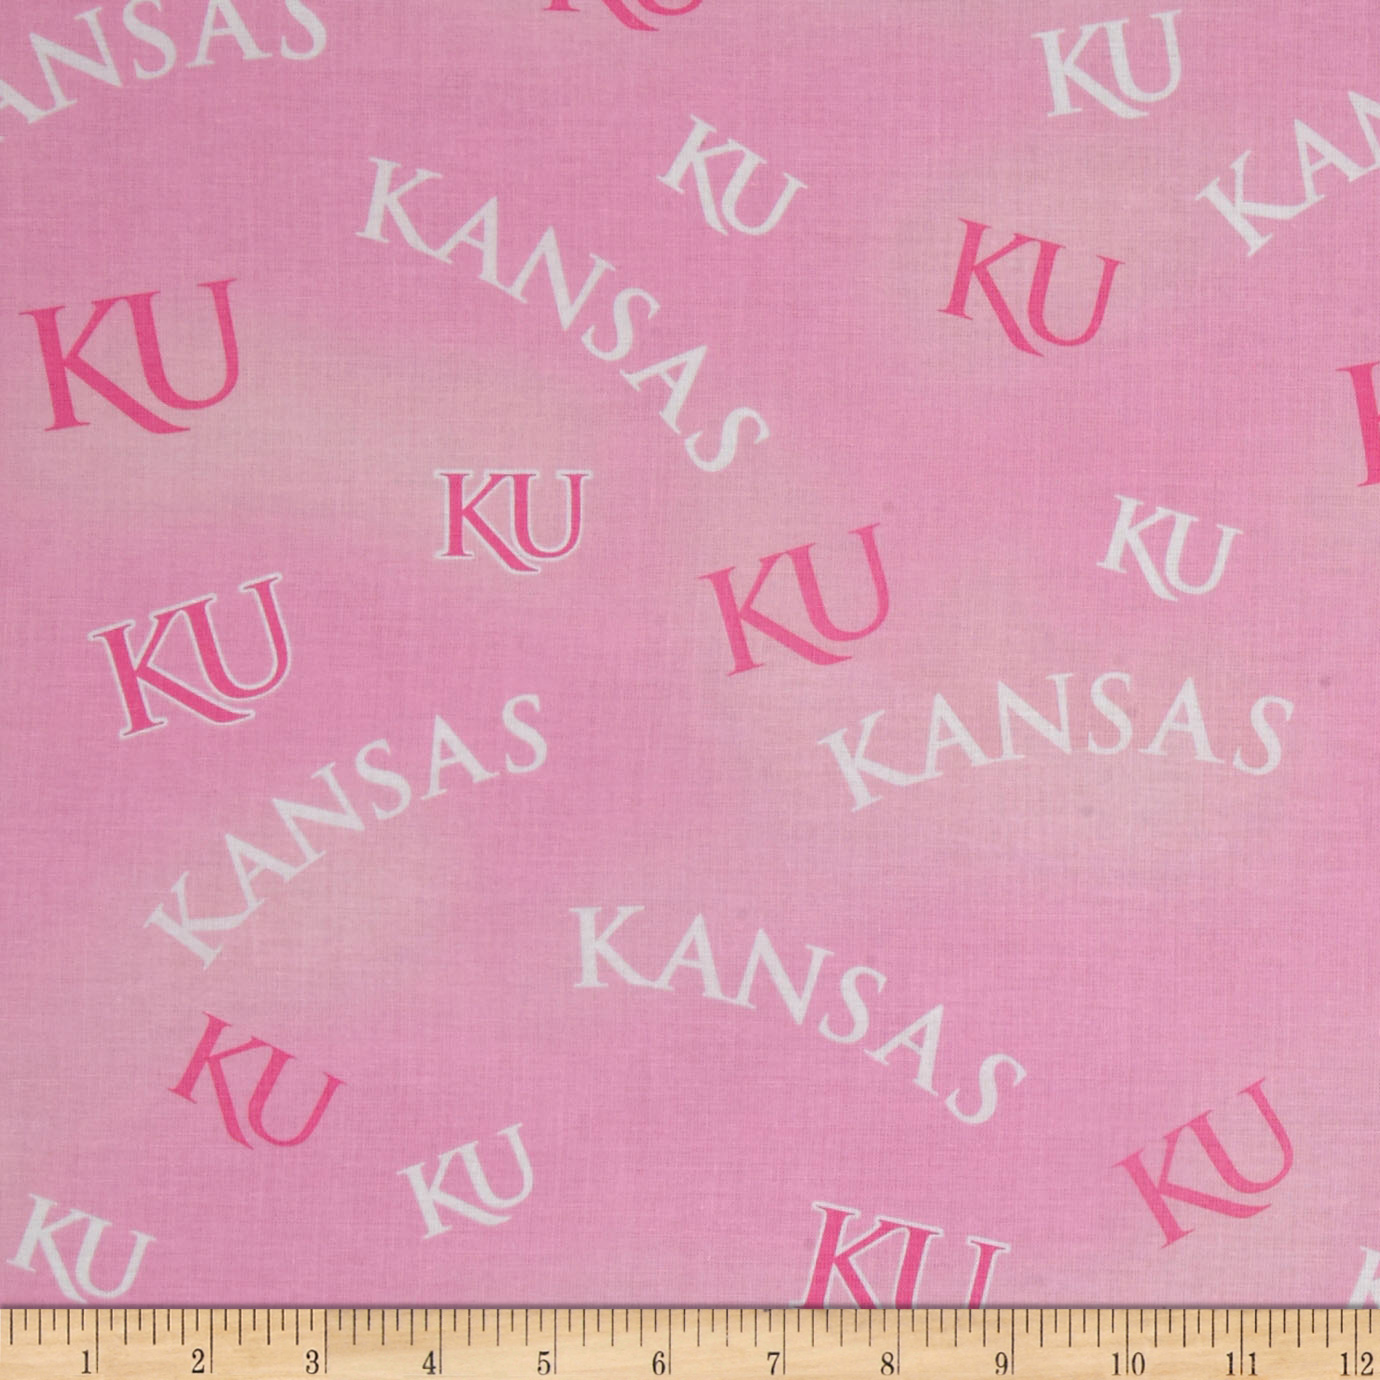 Collegiate Cotton Broadcloth Kansas Pink Fabric